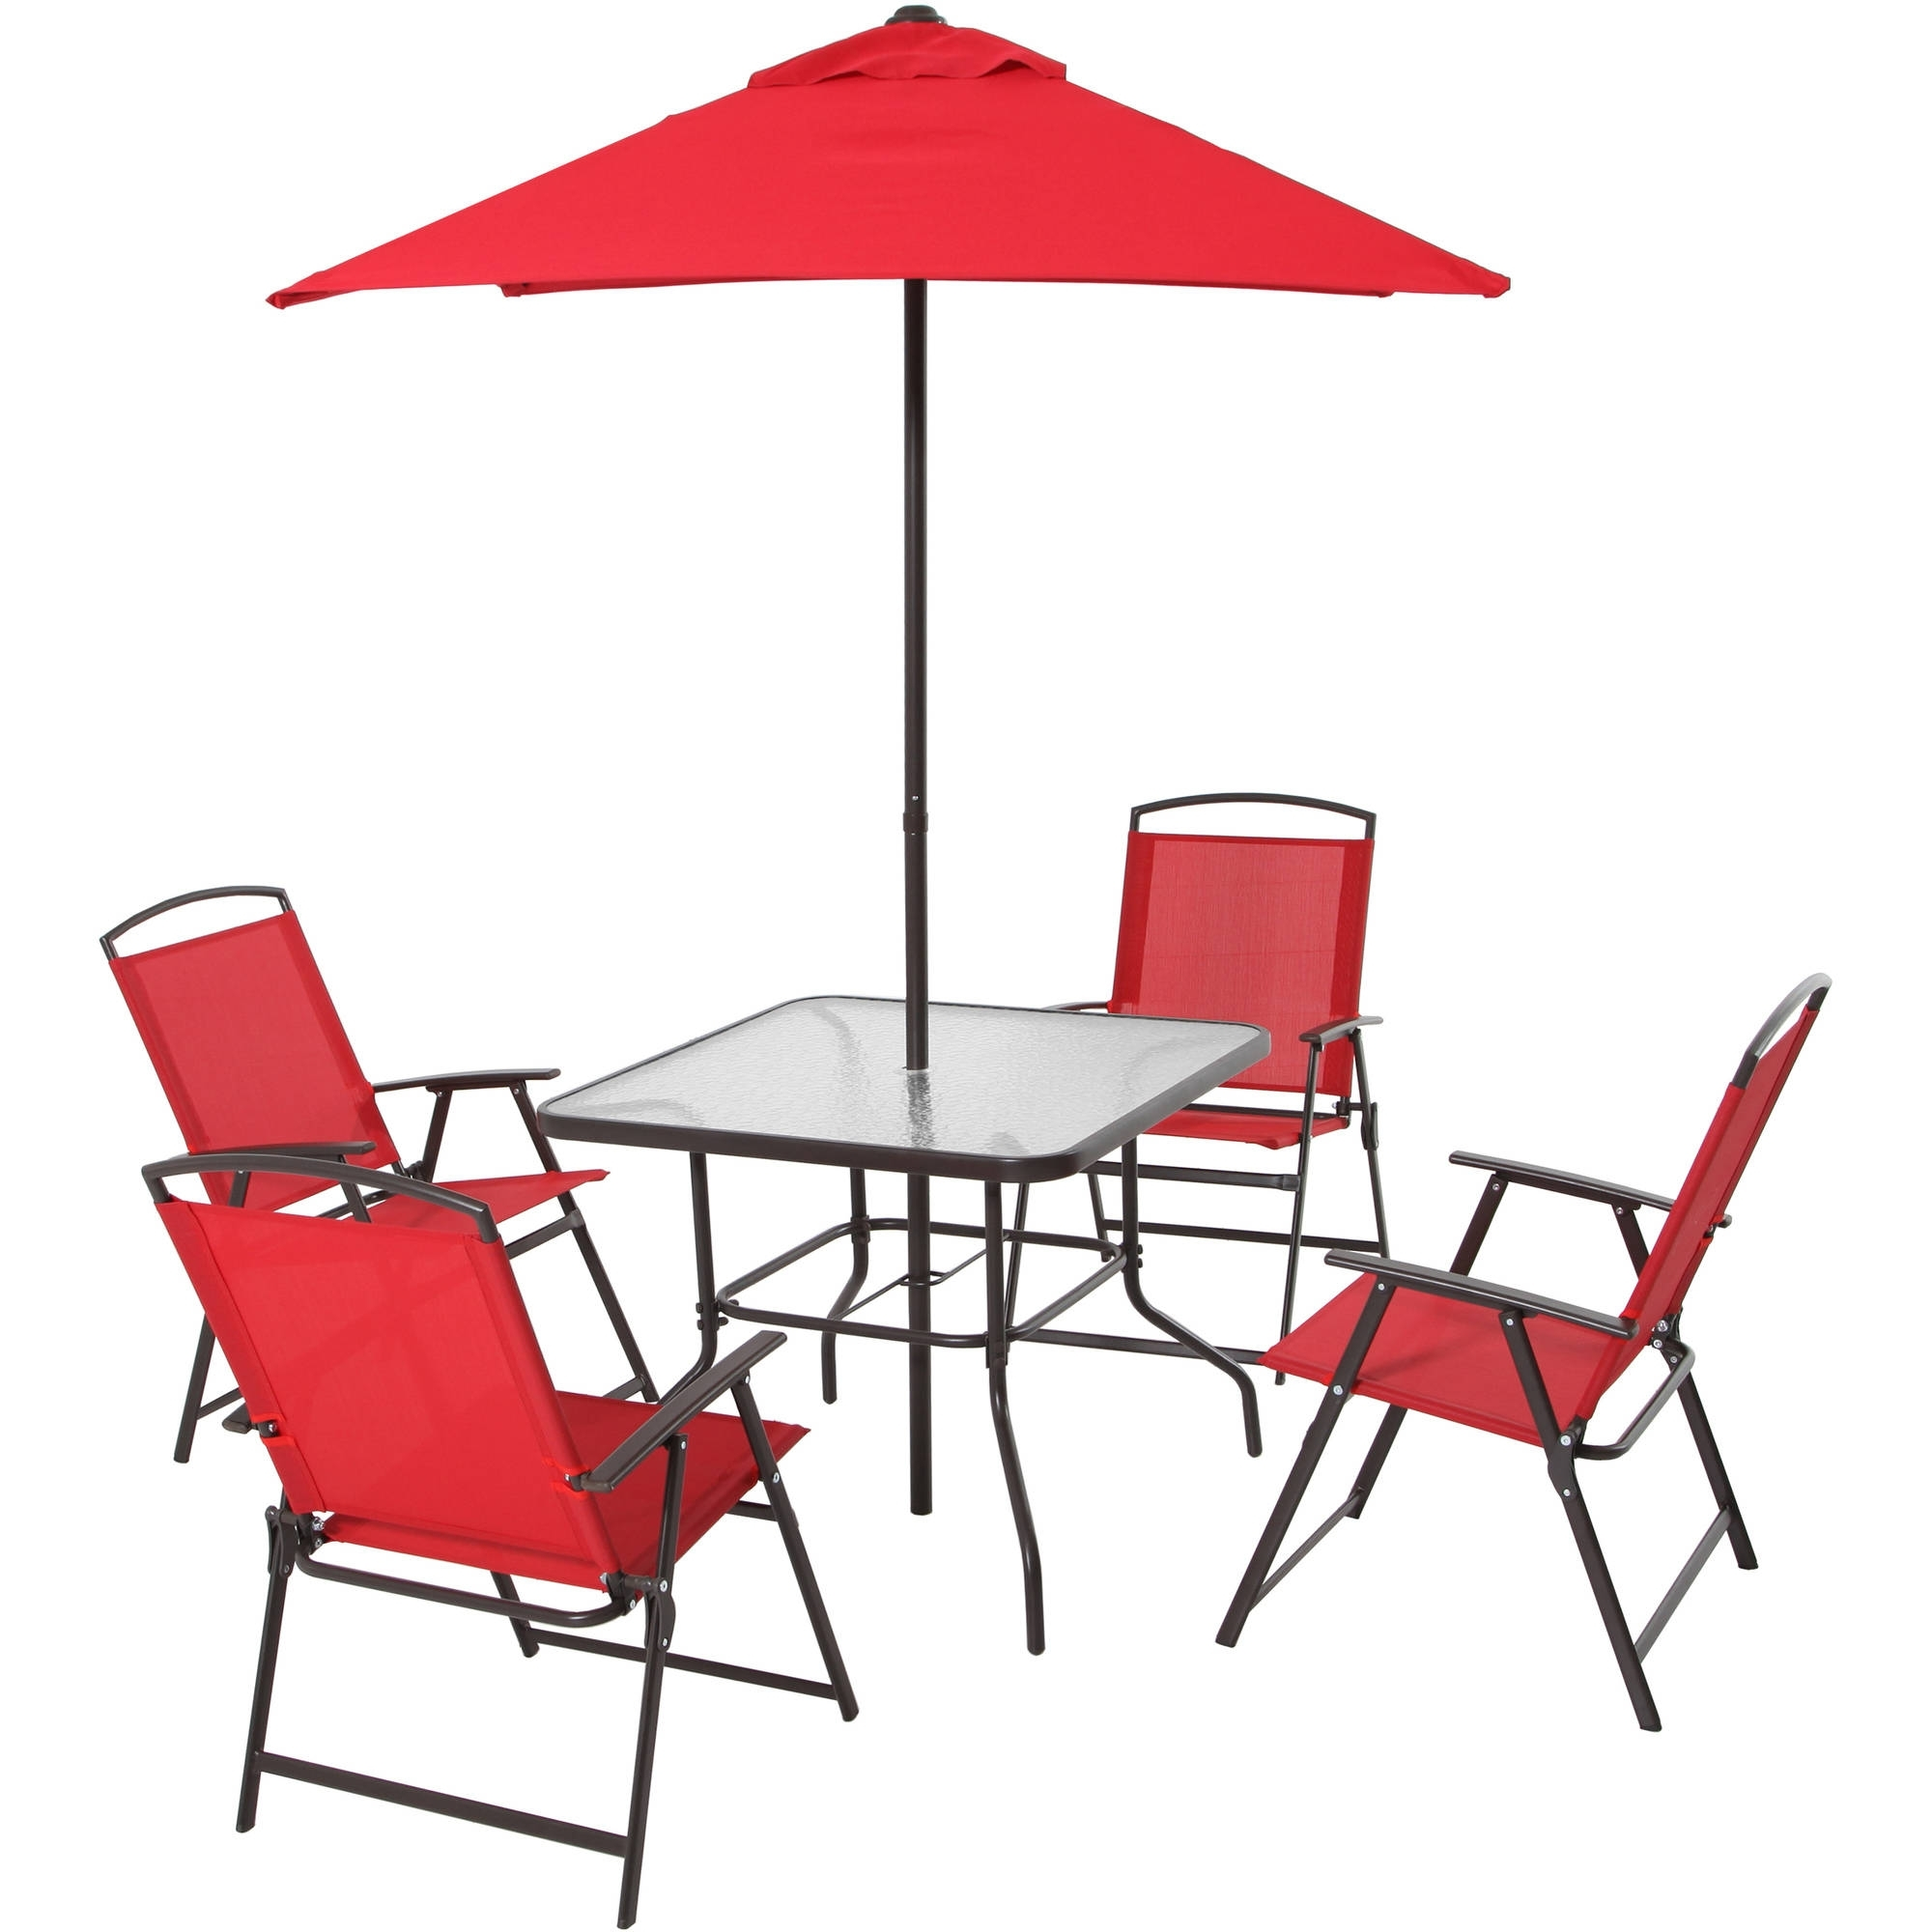 Patio Dining Set Folding Chairs Outdoor Furniture Metal Frame Throughout Most Popular Patio Table And Chairs With Umbrellas (View 15 of 20)